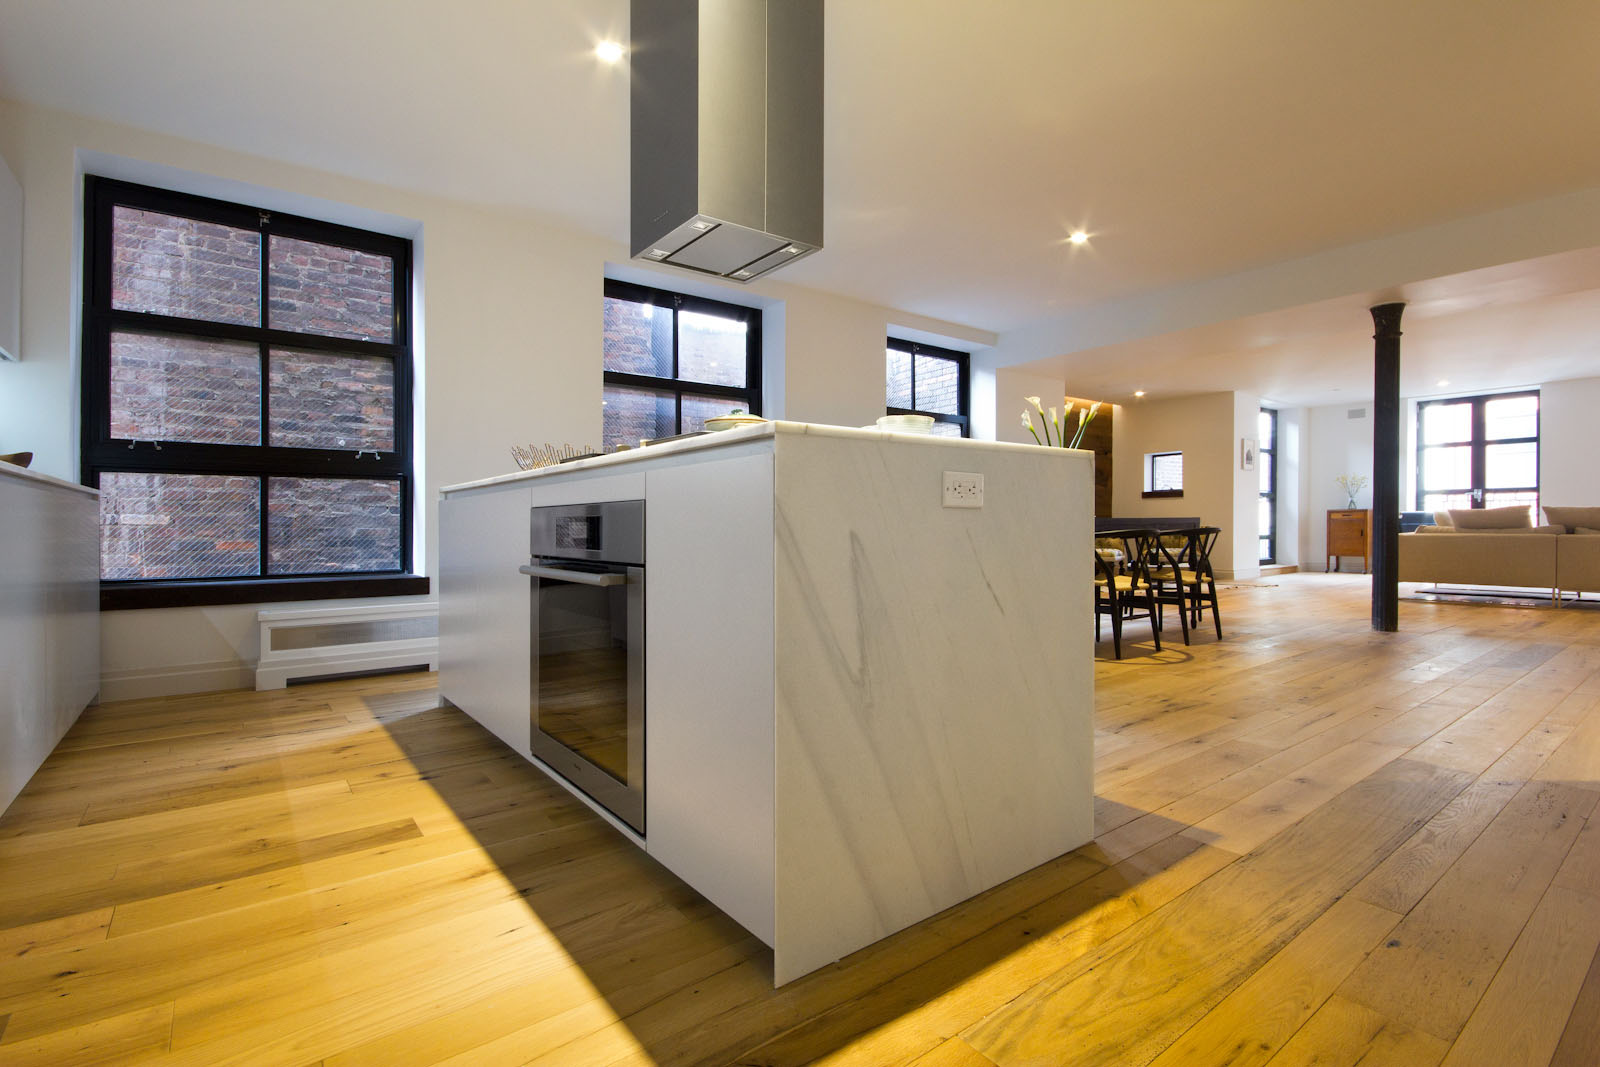 Used Kitchen Cabinets York Region Inspirational Nolita Luxury Loft In New York Idesignarch